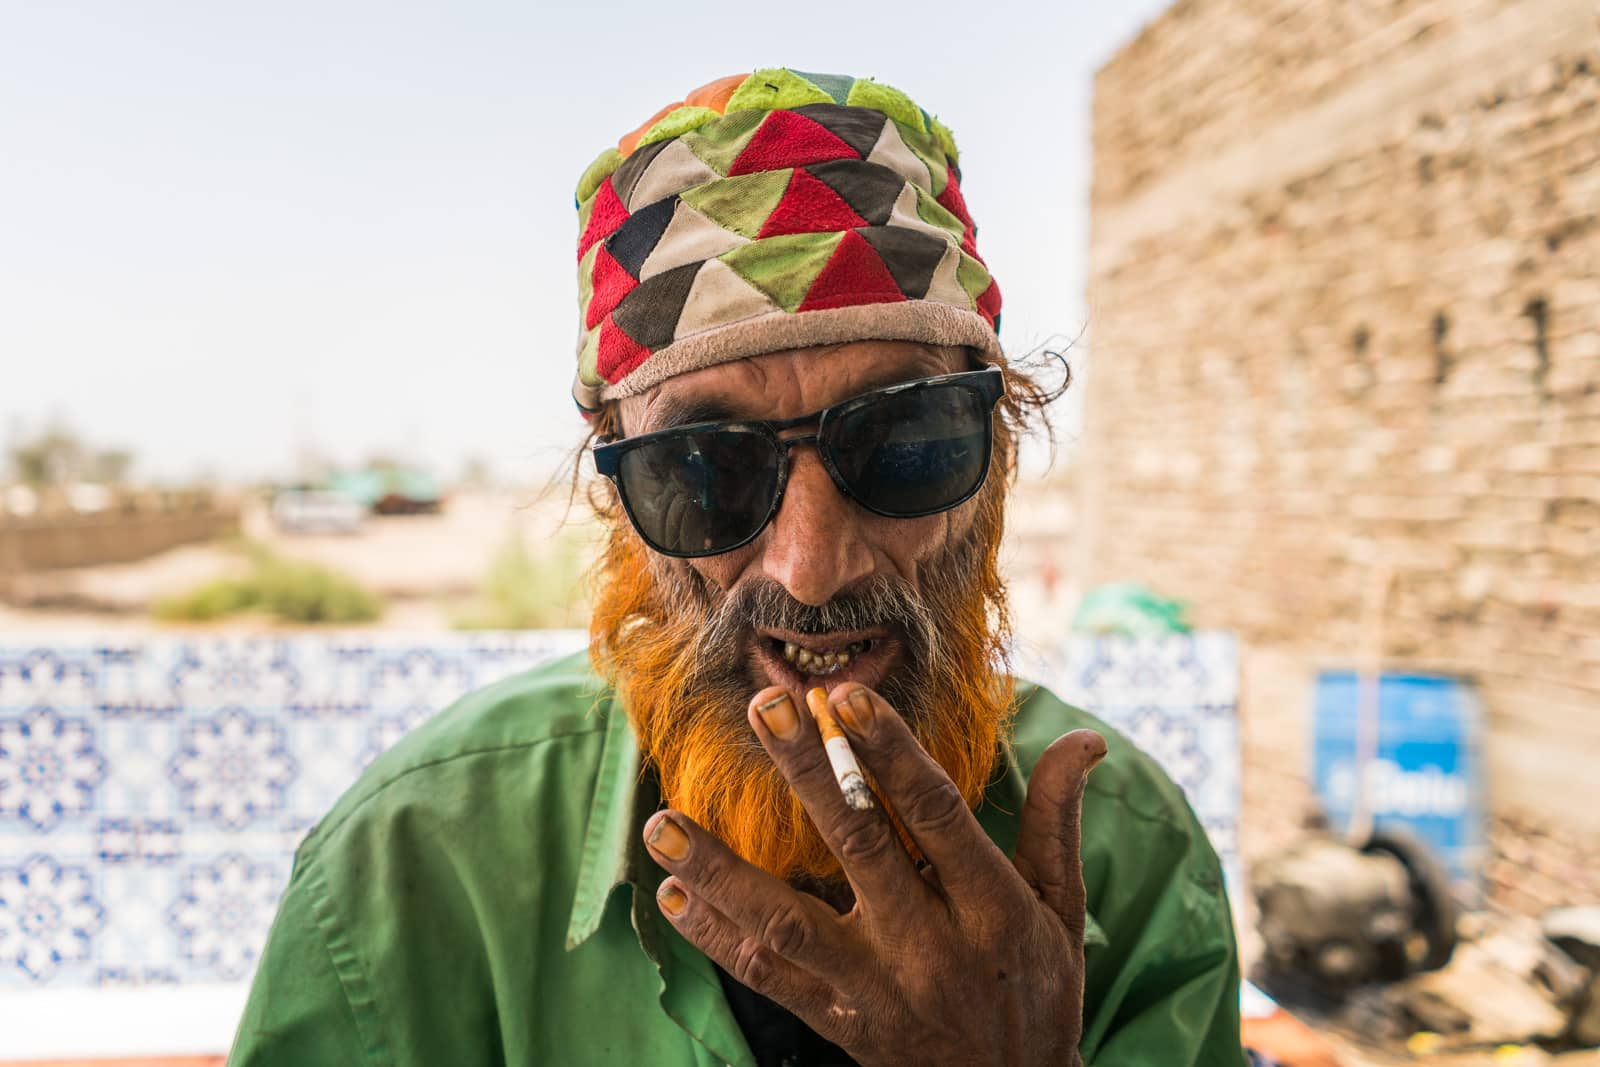 The Urs of Lal Shahbaz Qalandar in Sehwan, Pakistan - Sunglasses and smokes with a fakir - Lost With Purpose travel blog